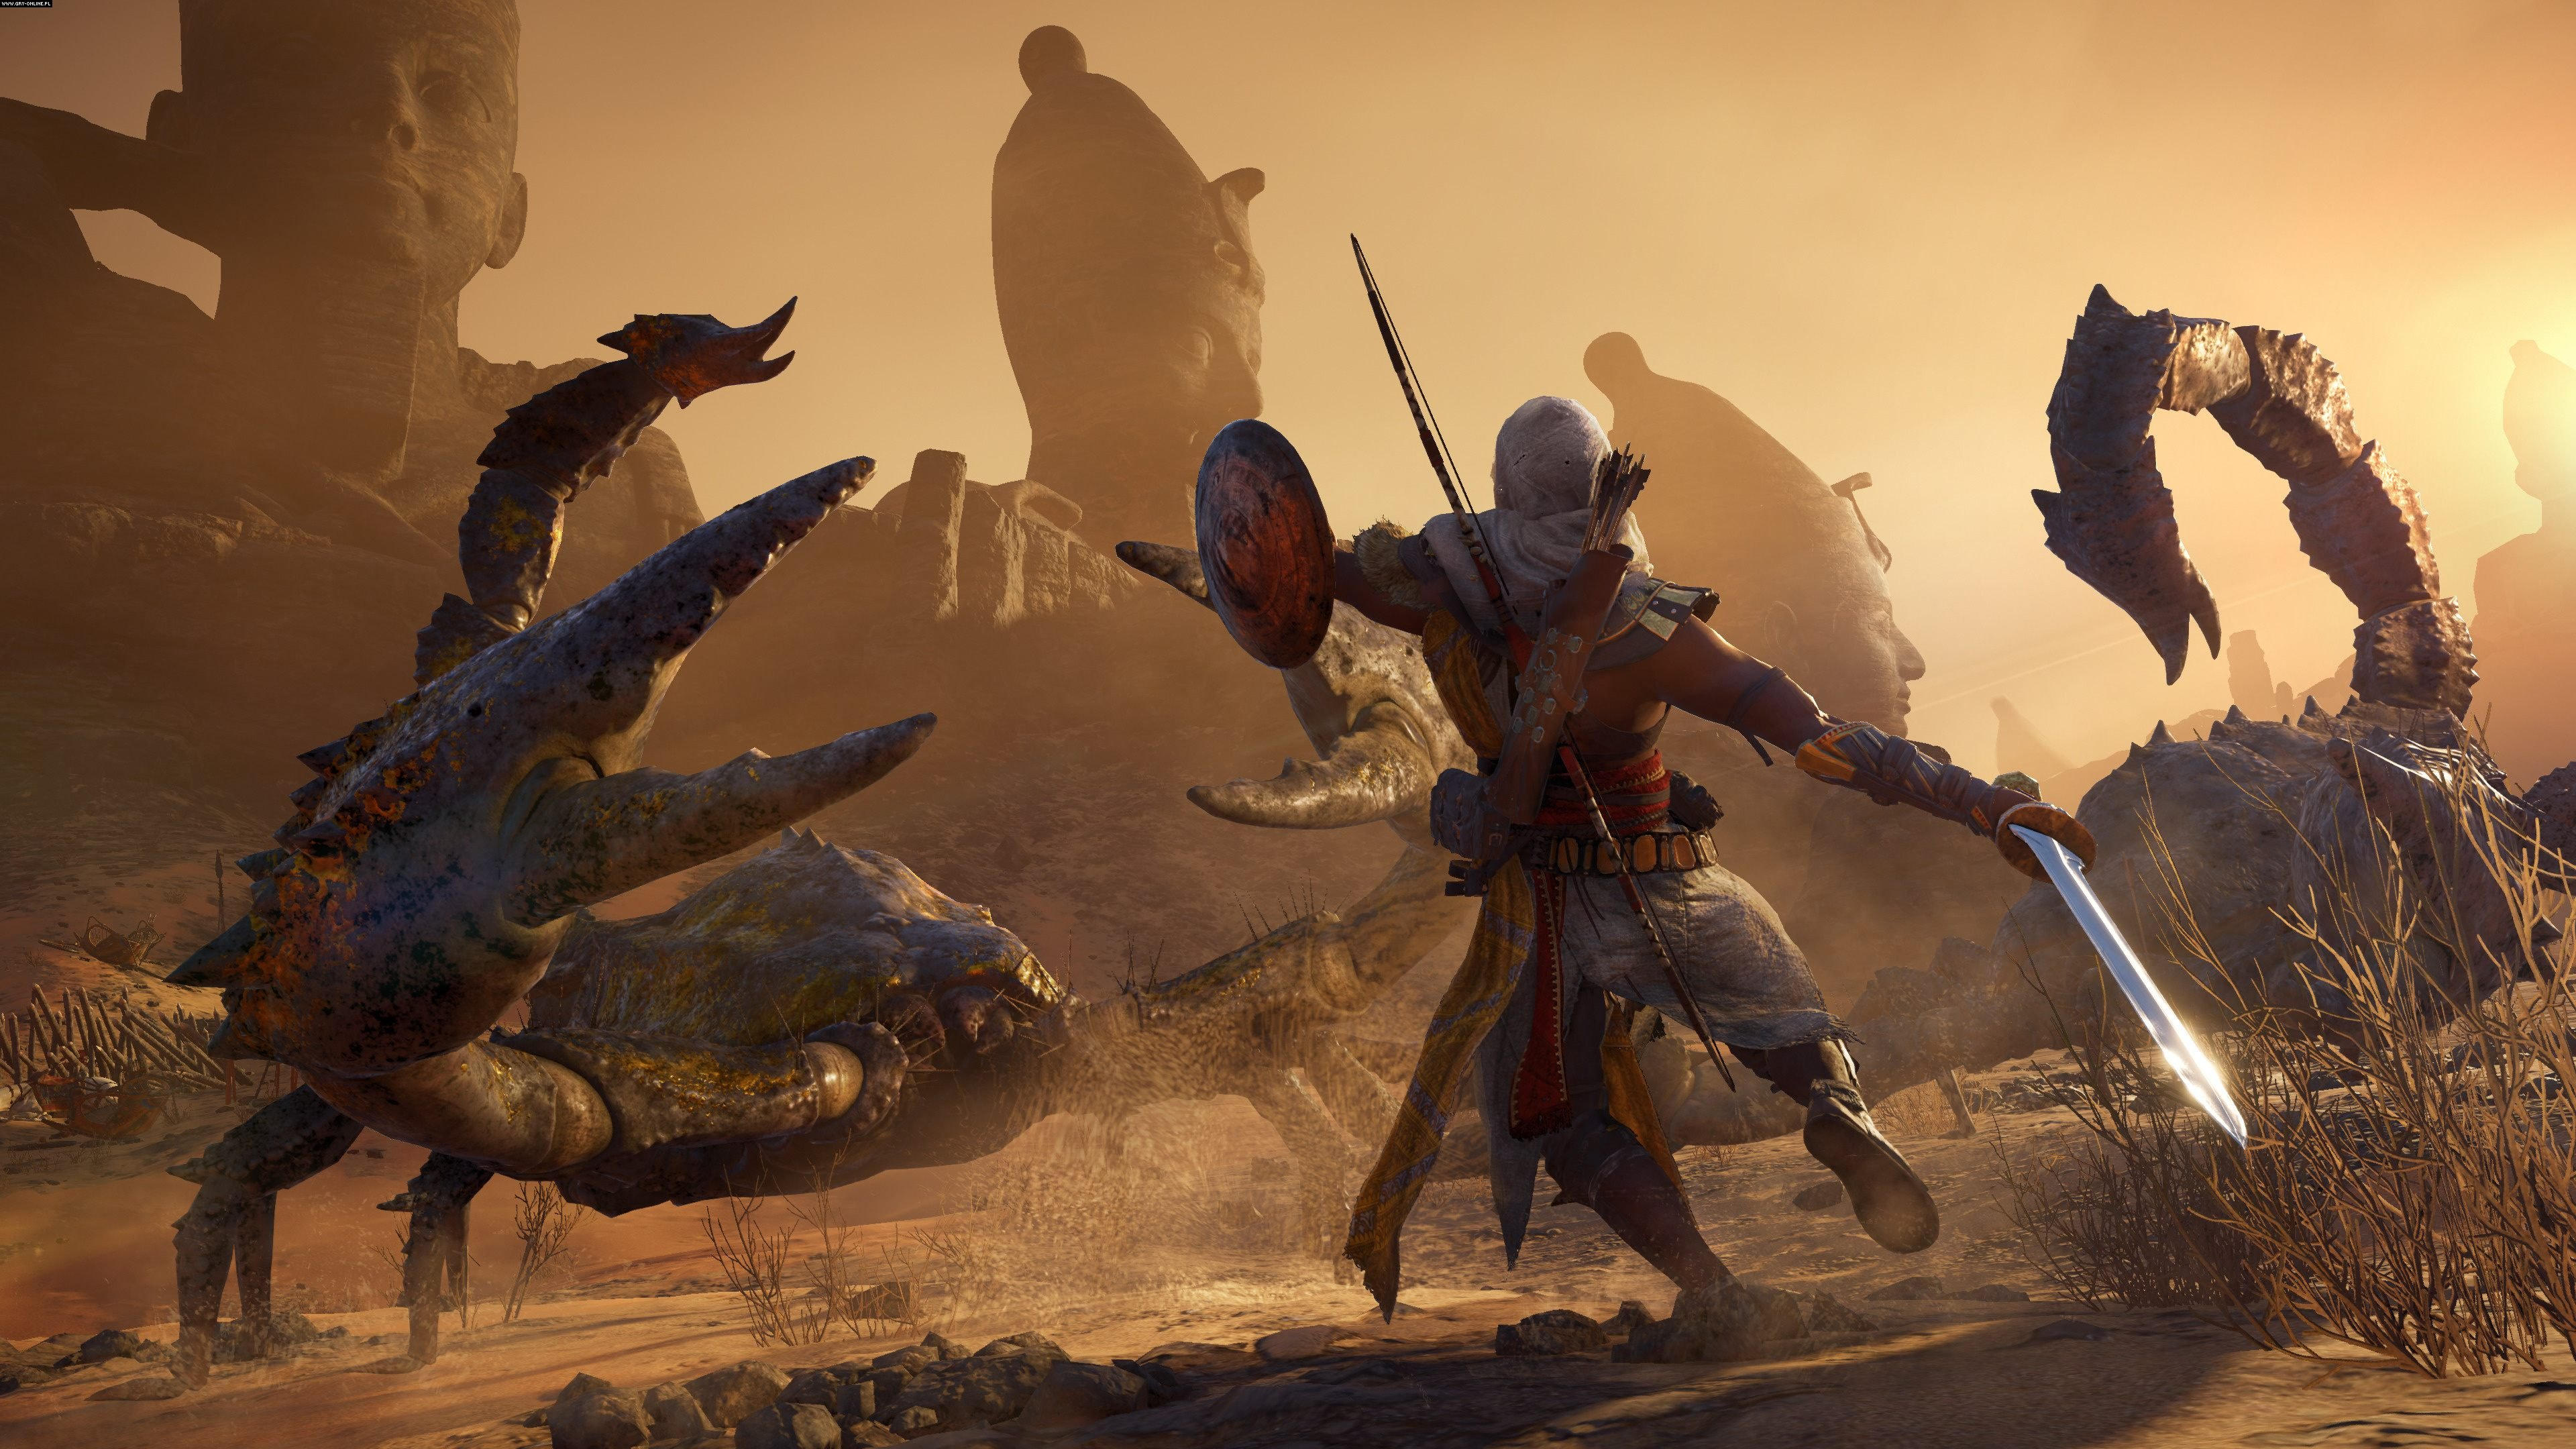 Assassin's Creed Origins PC, PS4, XONE Games Image 59/96, Ubisoft